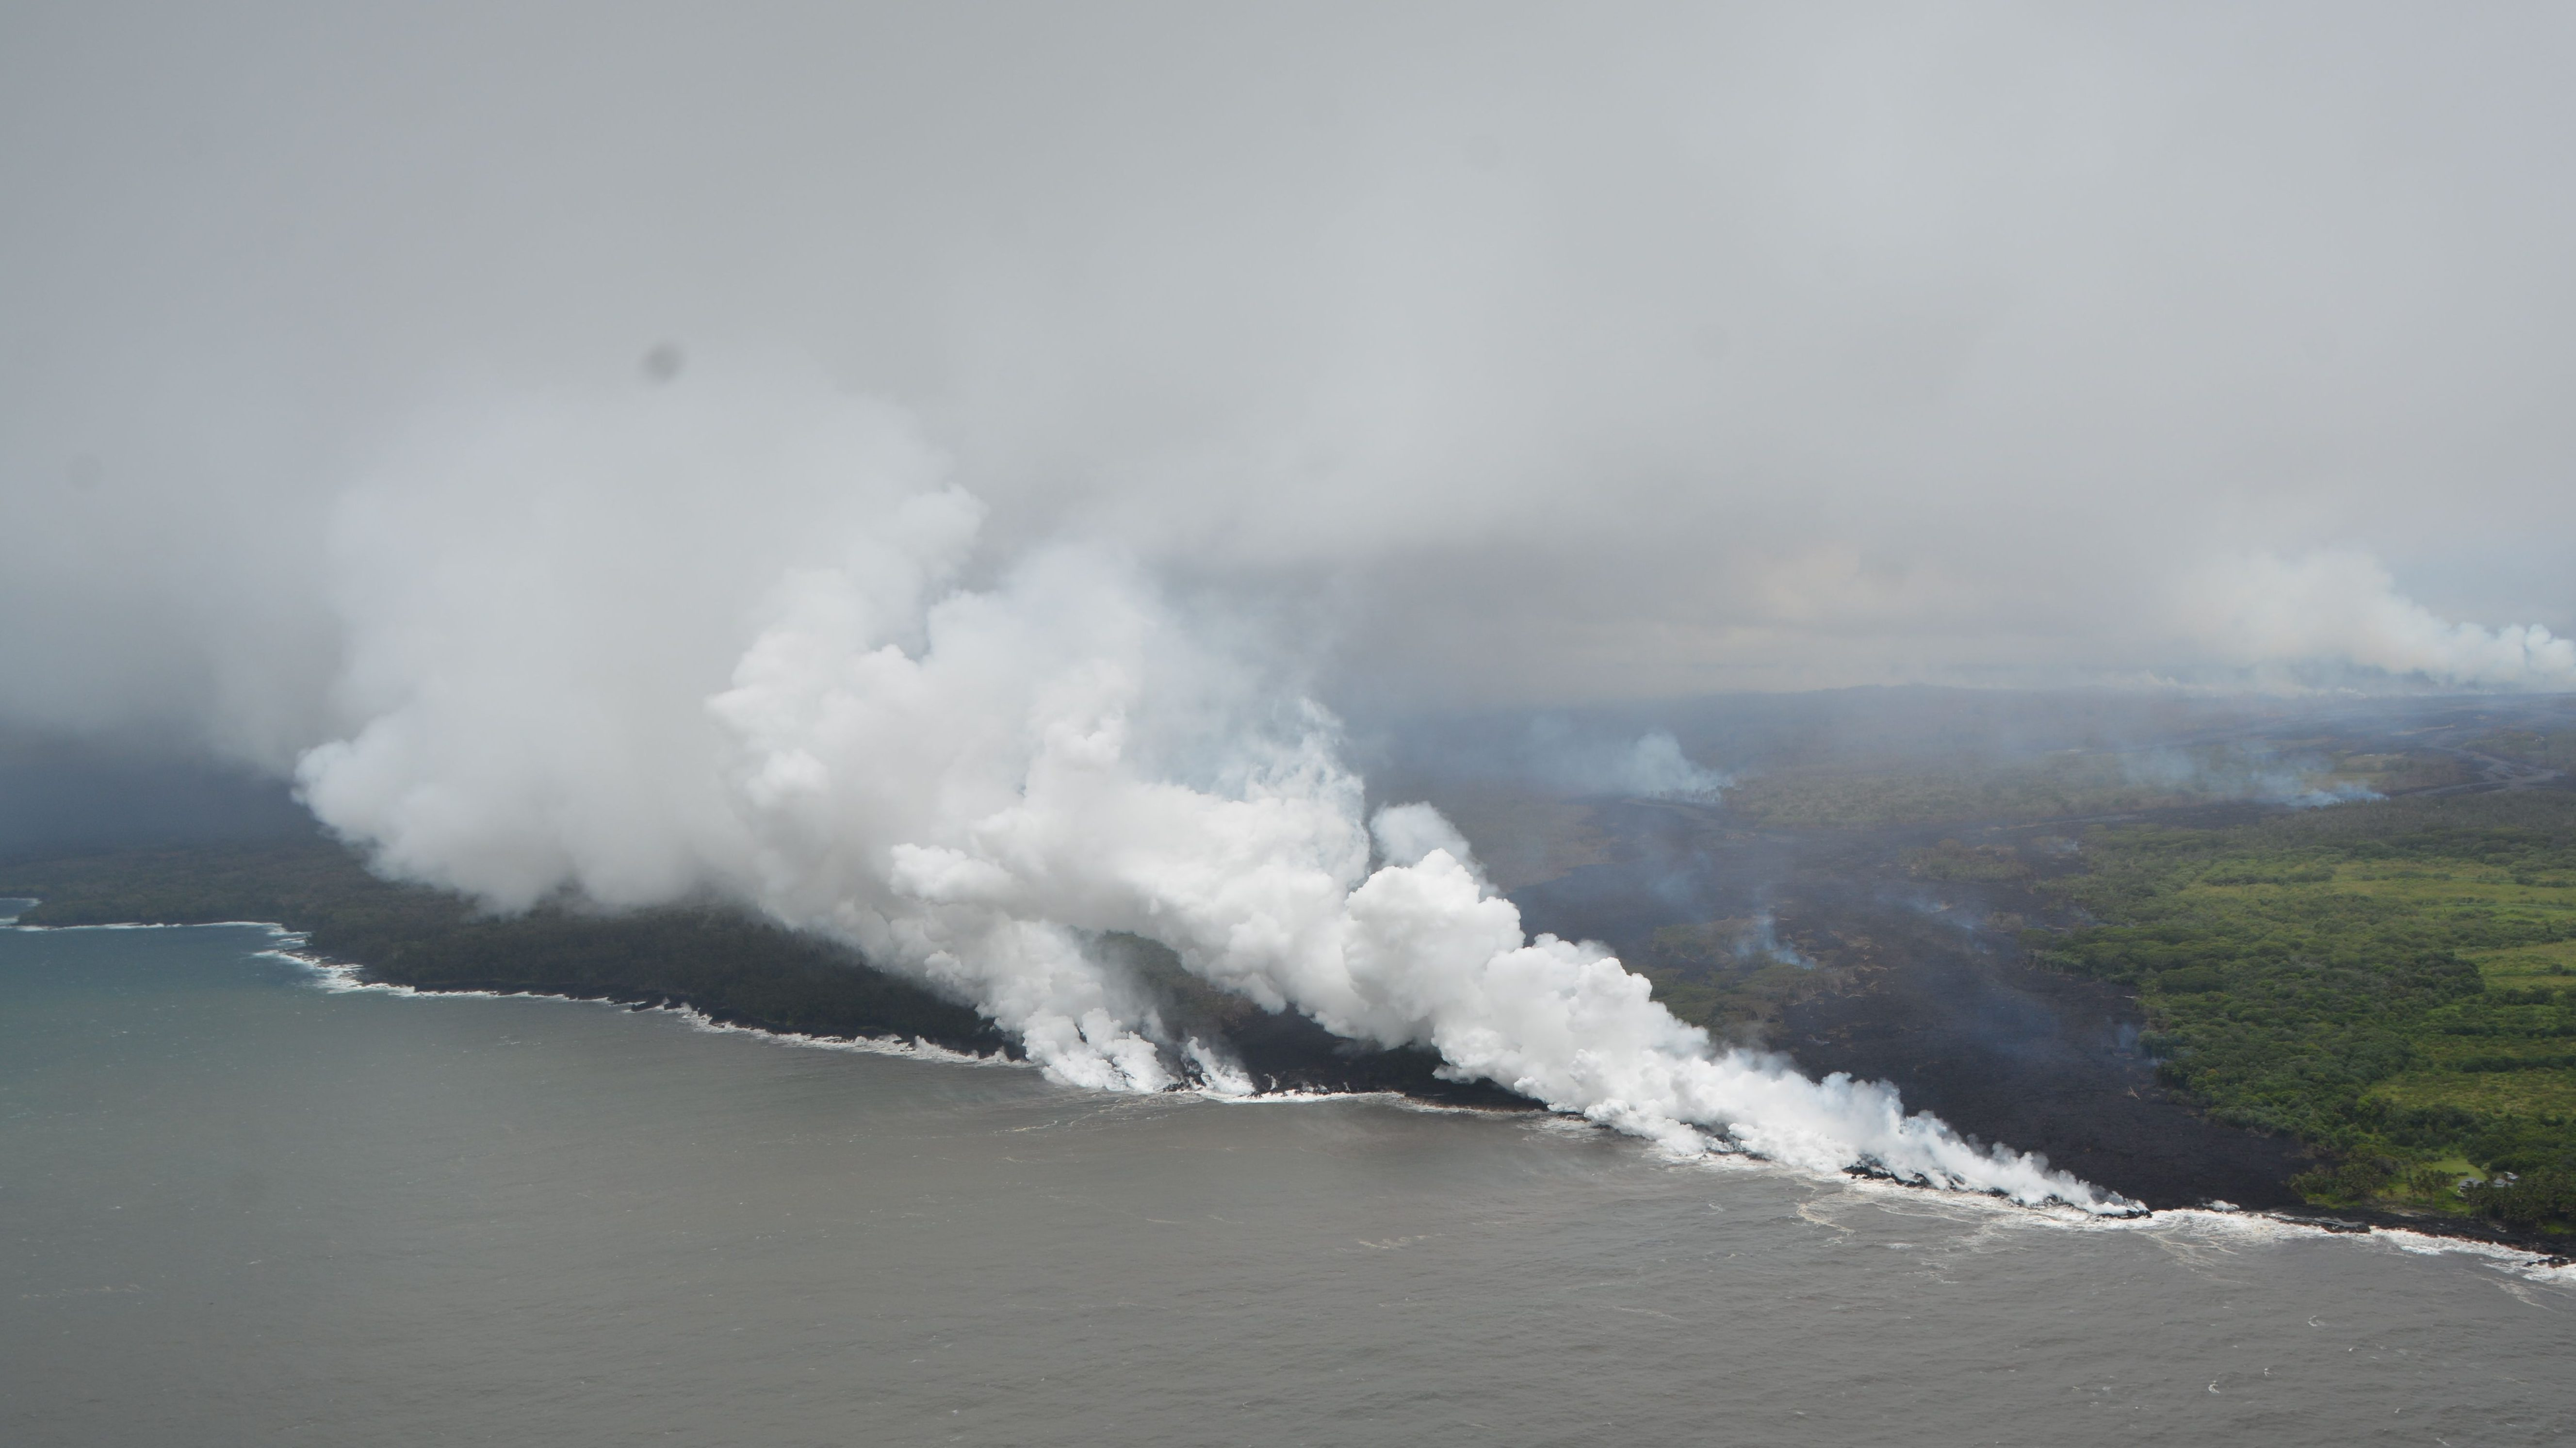 Hawaii volcano creates toxic steam clouds as corrosive as diluted battery acid